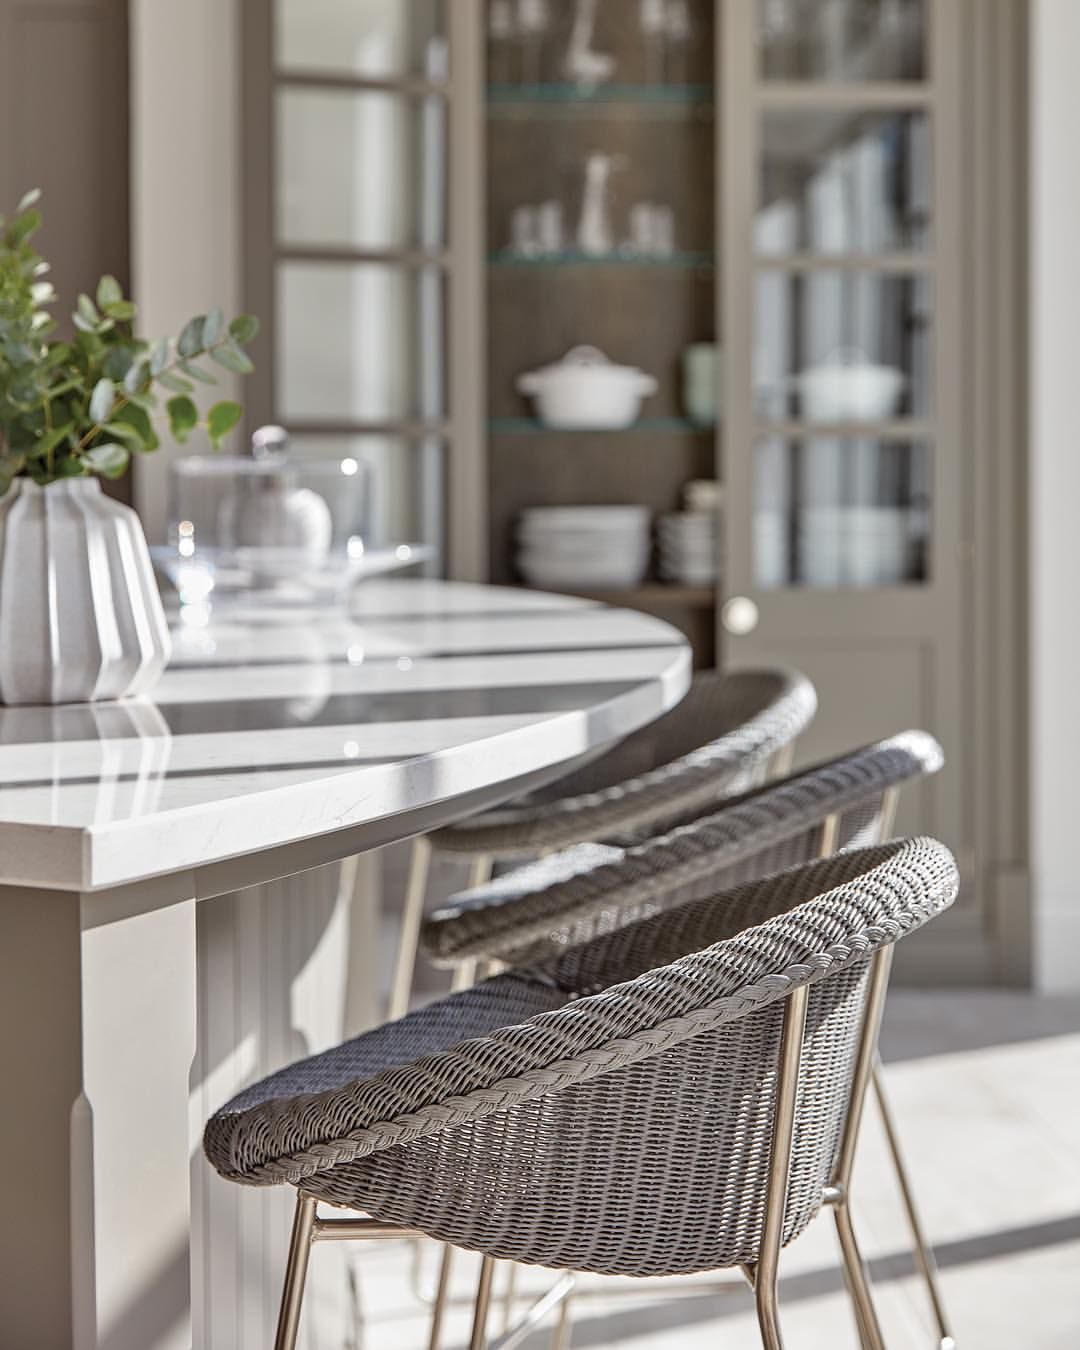 Absolutely In Love With These Counter Stools Joe Counter Stools From Vincent Sheppard Outdoor Kitchen Bars Tom Howley Kitchens New Kitchen Designs